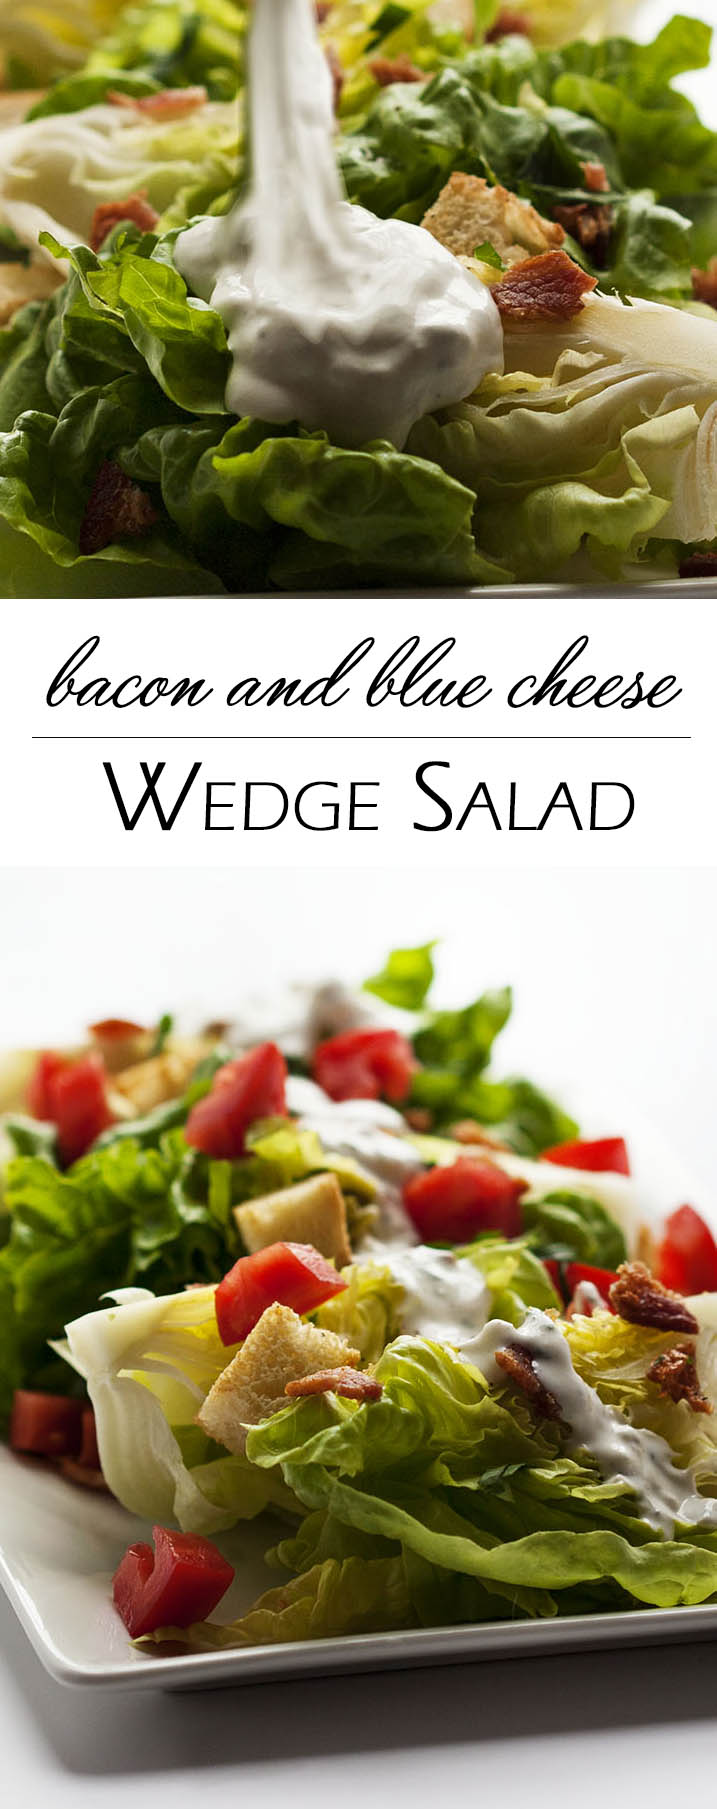 Blue Cheese and Bacon Wedge Salad - Creamy blue cheese, crispy bacon, and ripe tomatoes combine with tender lettuce in this version of the classic salad. | justalittlebitofbacon.com